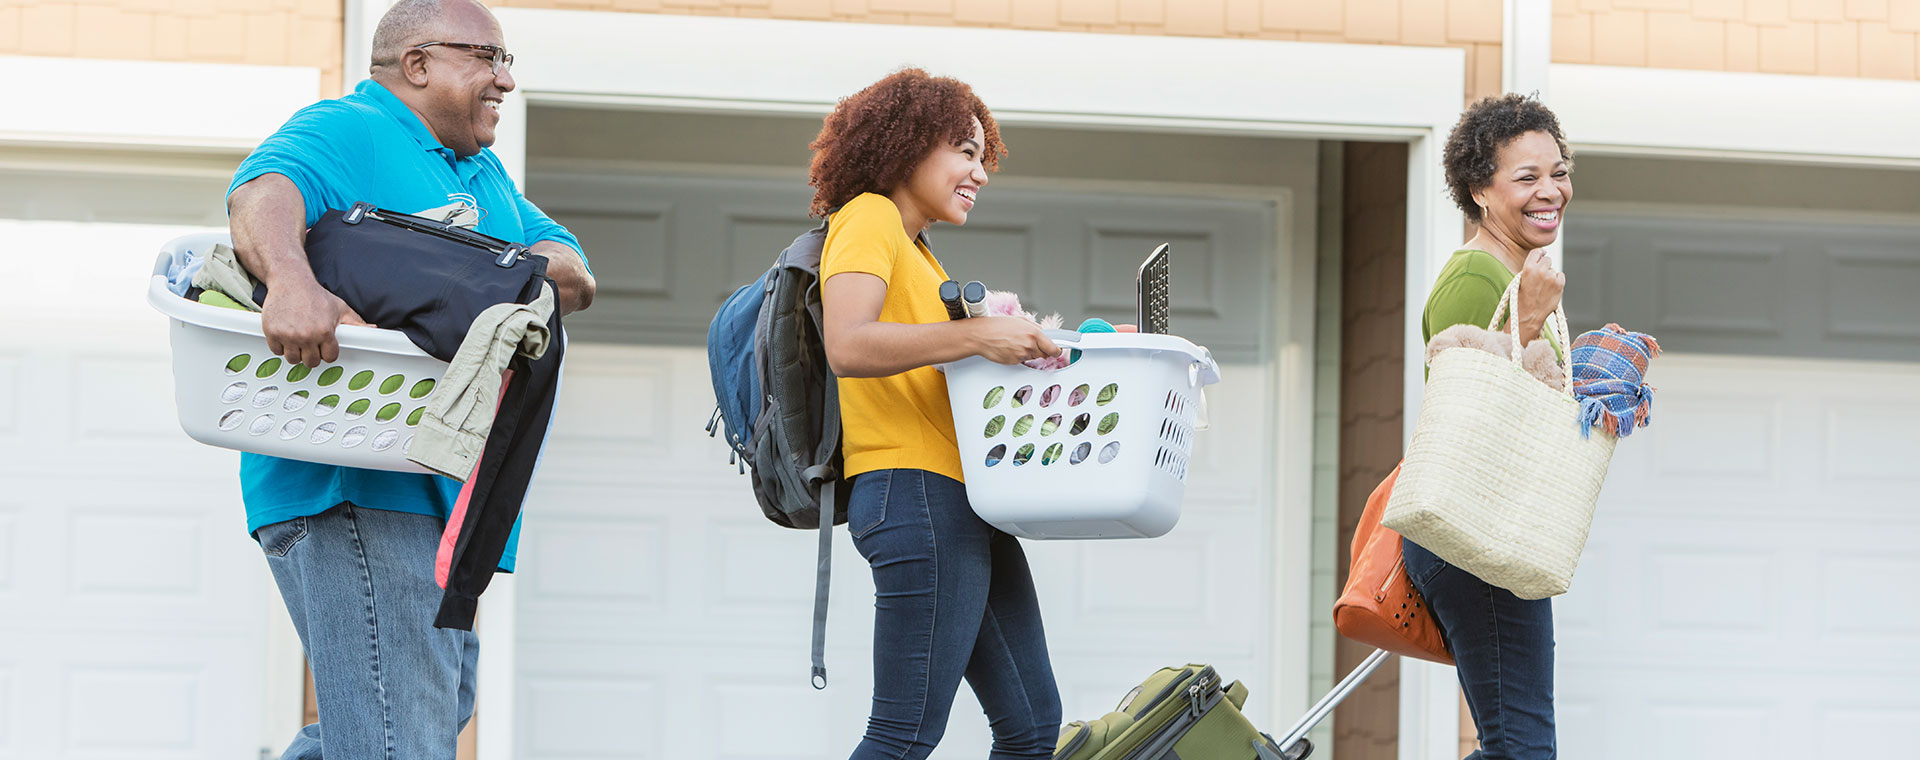 A young, African American woman is moving with the help of her parents. She is in the middle, carrying a white laundry basket that is full of household items. Her father is behind her and also carries a white laundry basket full of clothes. Her mother is in the front, carrying two full bags and toting a suitcase behind her.